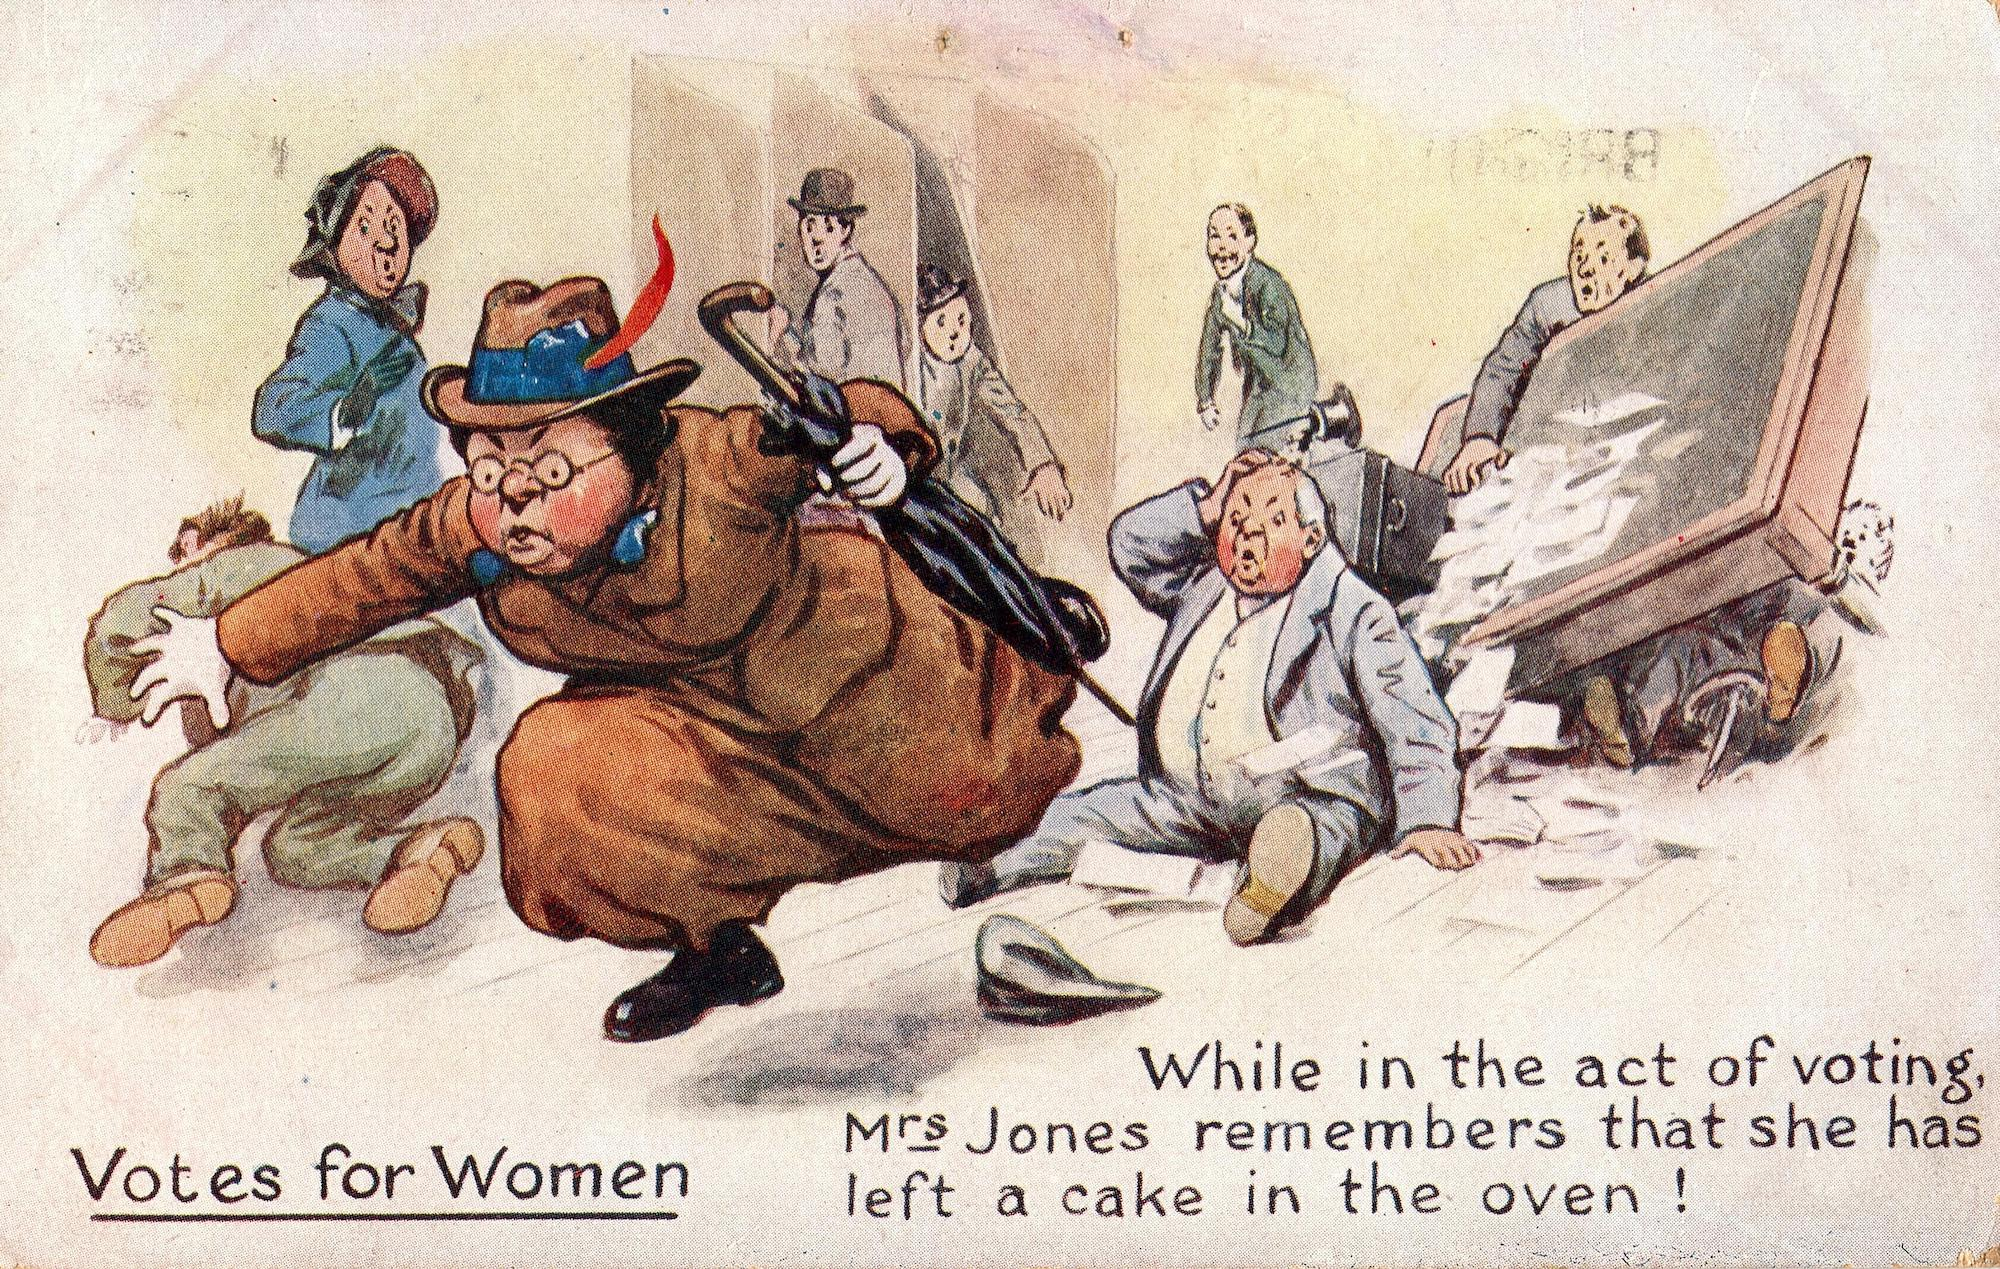 """A cartoon of a woman running out of a polling place, knocking over the table and spilling ballots in her haste. The text reads """"While in the act of voting Mrs Jones remembers that she has left a cake in the oven!"""""""